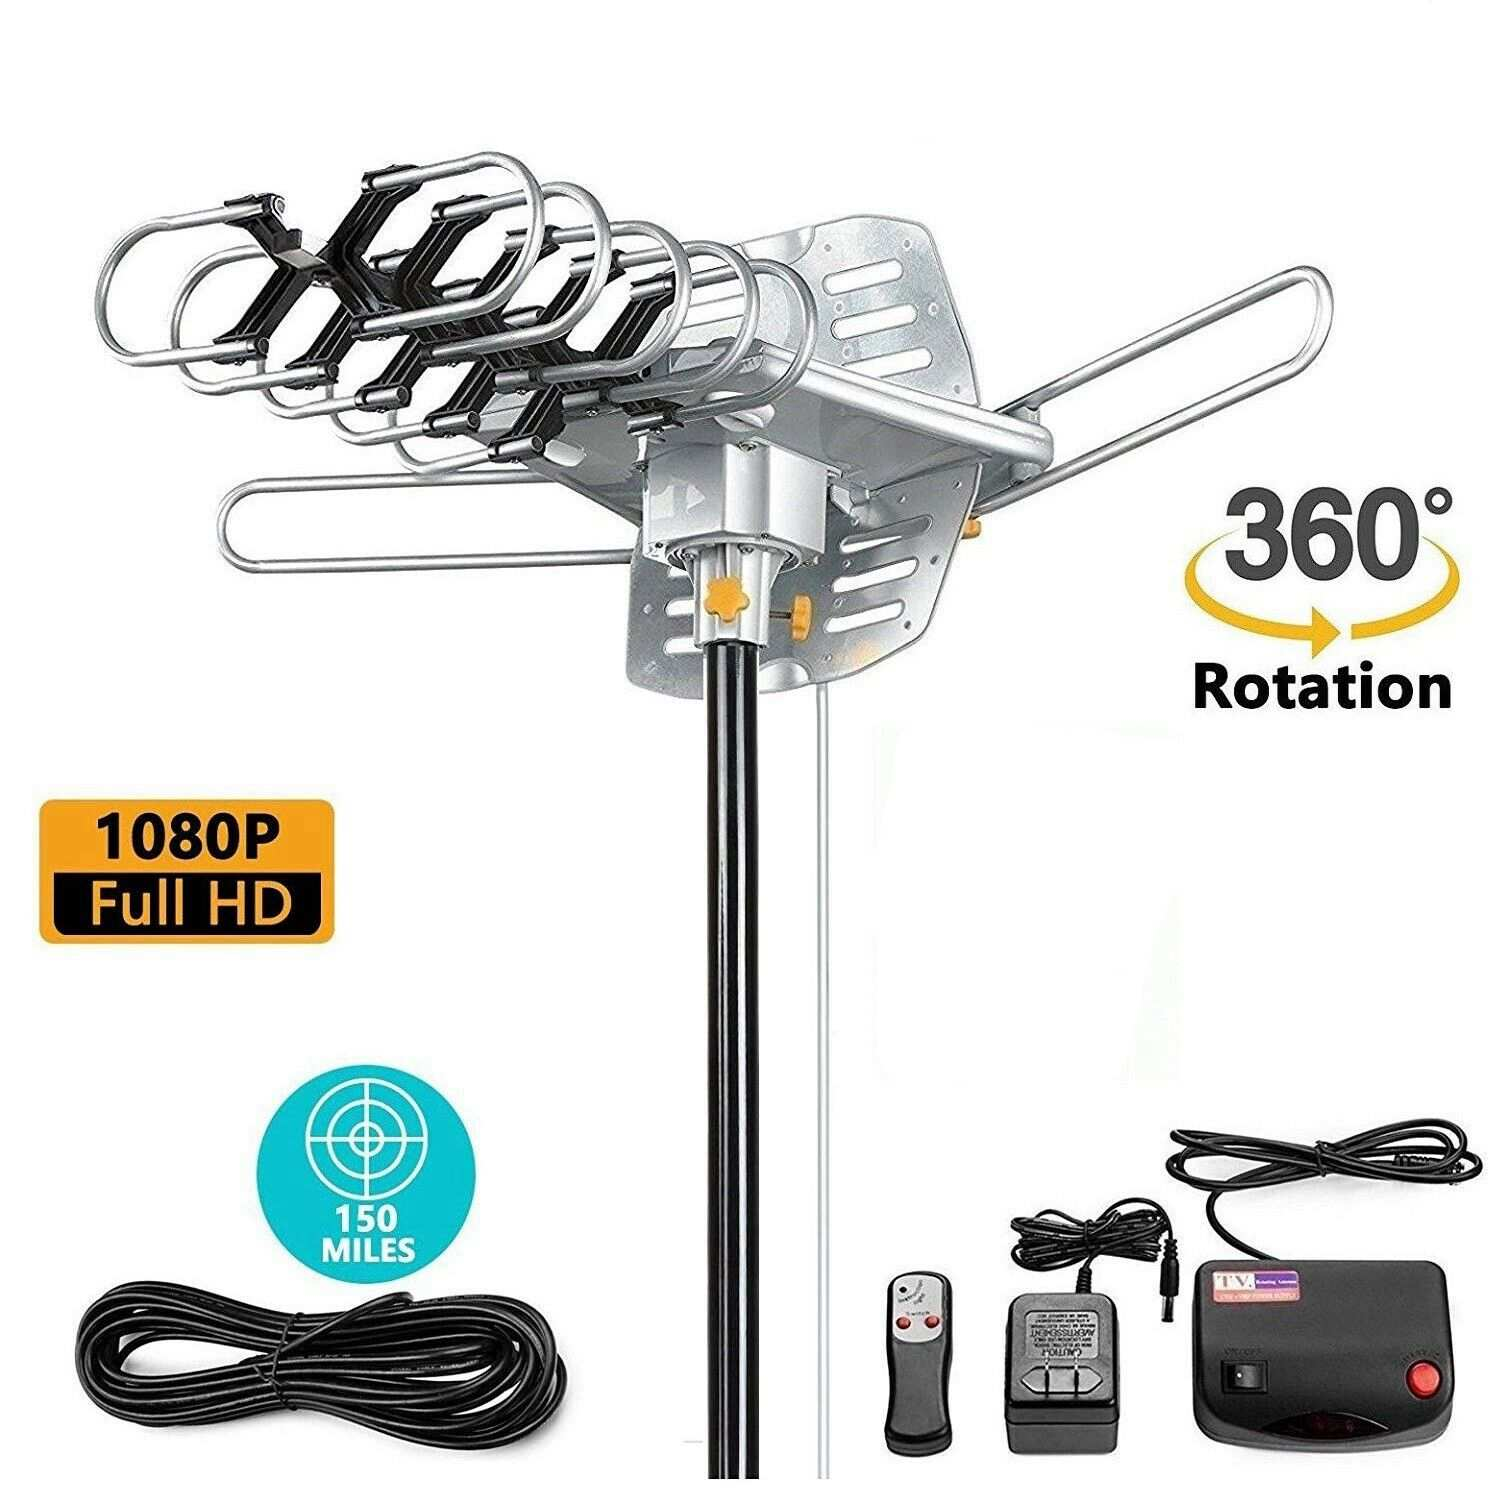 150 Miles 360 Degree HD Digital Outdoor TV Antenna For Full HDTV DVB-T UHF VHF FM High Gain Strong Signal Outdoor TV Antenna